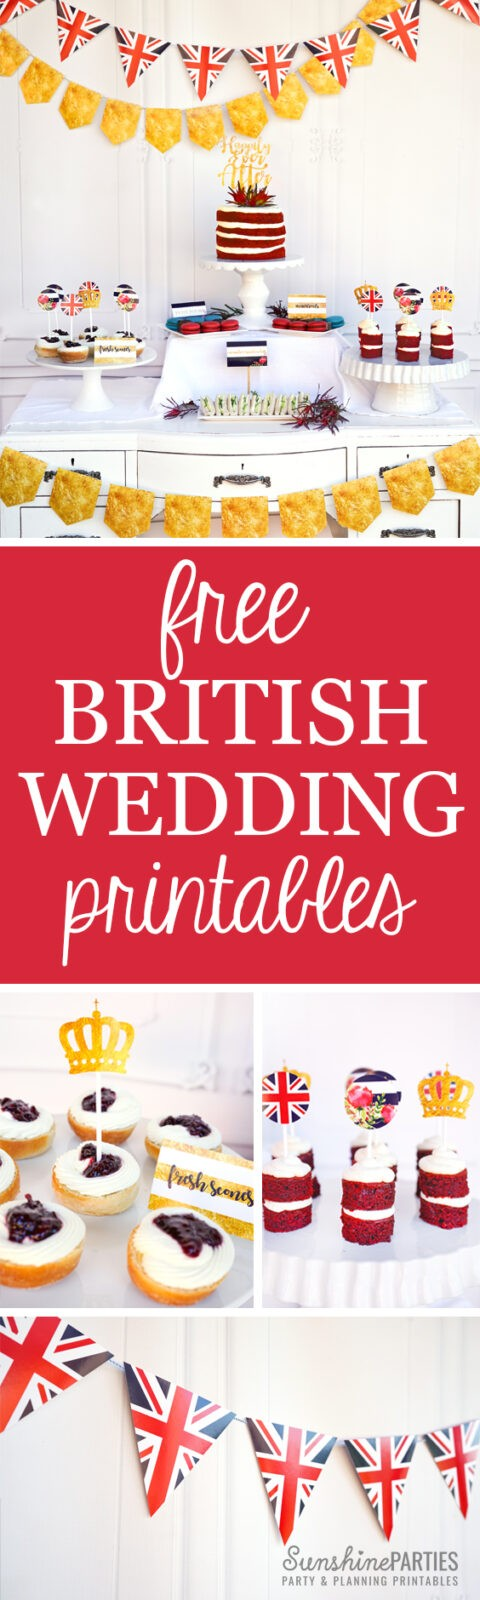 royal wedding free printables set by Sunshine Parties